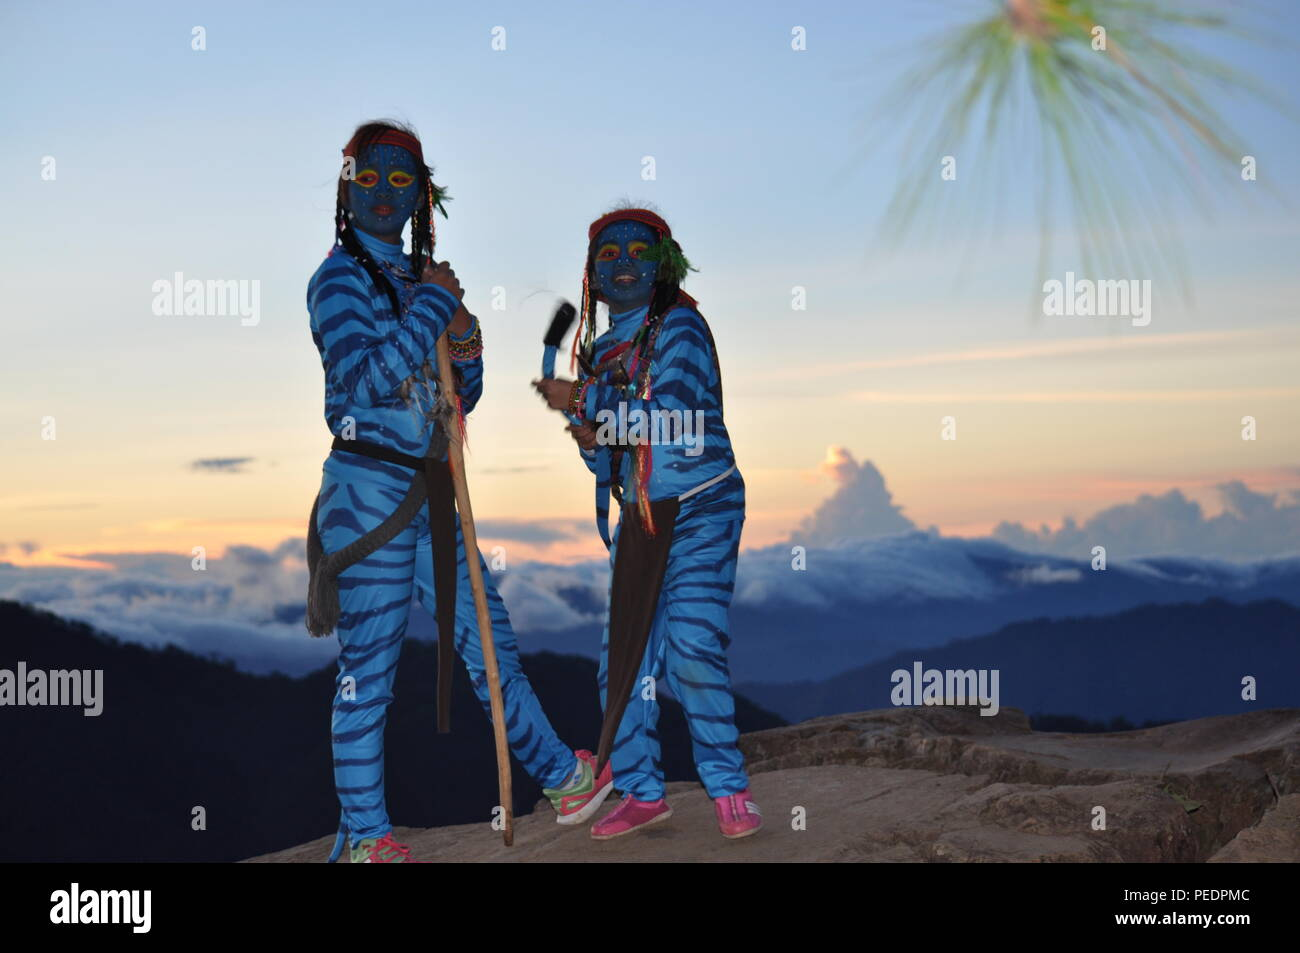 2 young avatar girls Keytiri & Feytiri arriving at mt. Ulap  just before the dawn is breaking and awaiting the morning sun at the Corral Rock Ampucao. - Stock Image